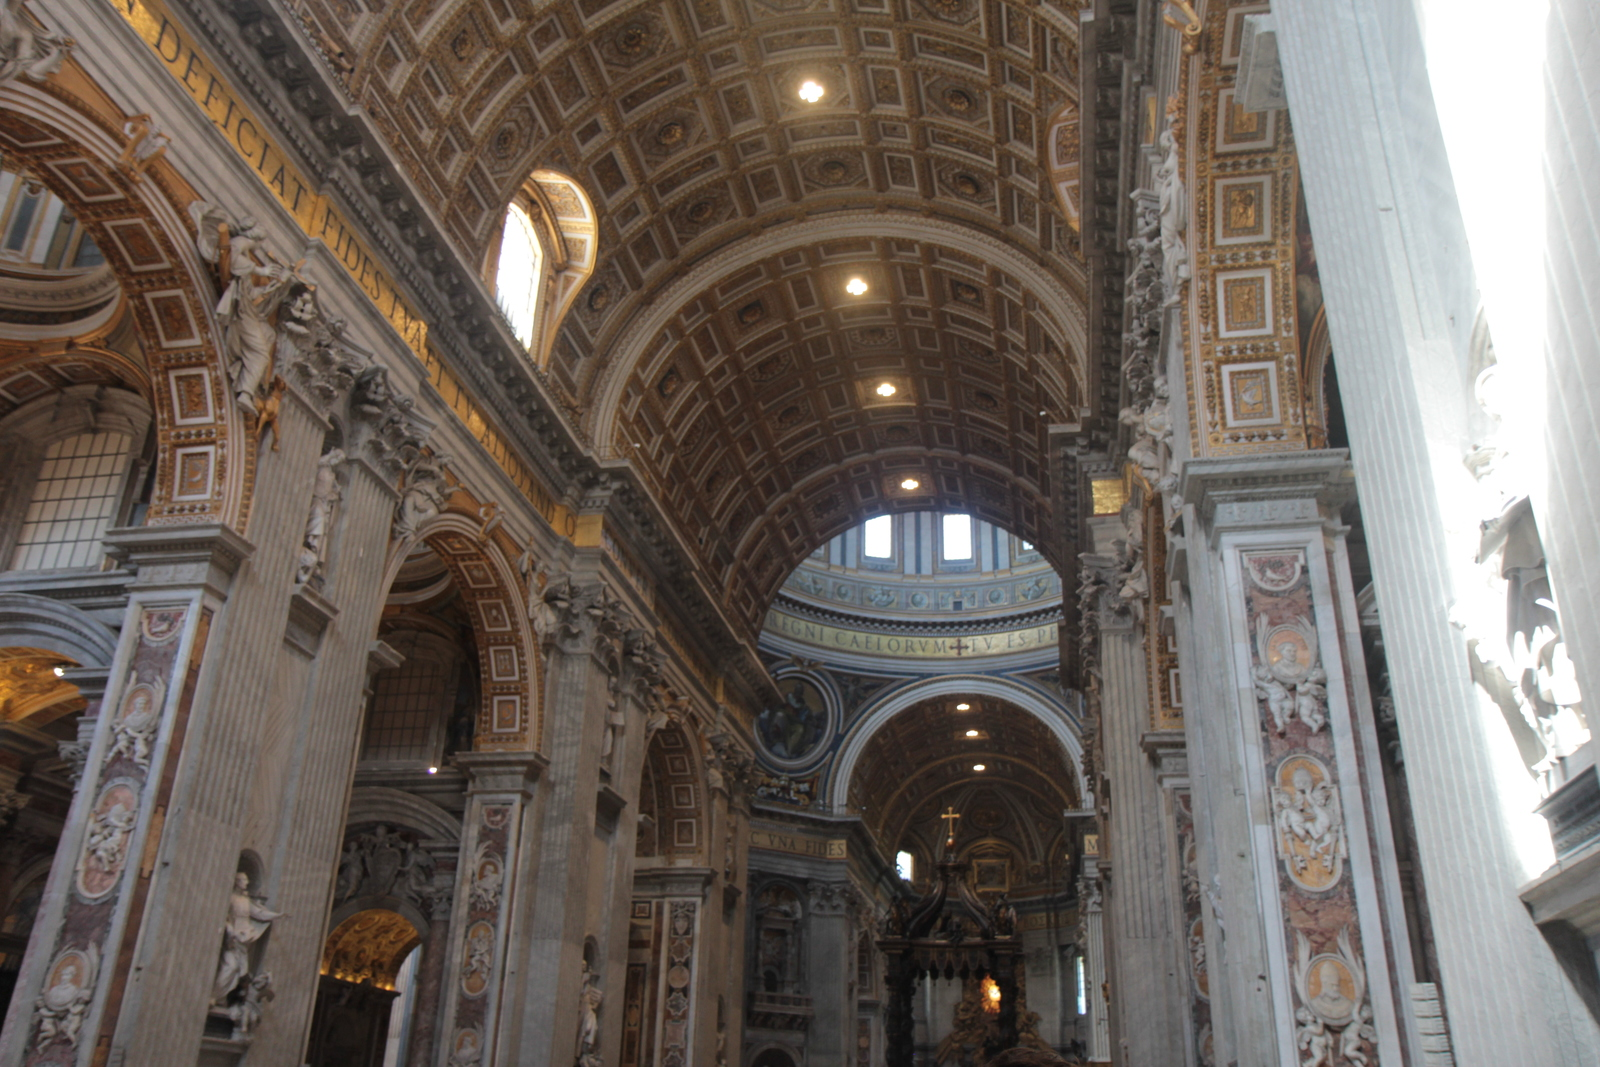 The massive vault of St. Peter's Basilica.